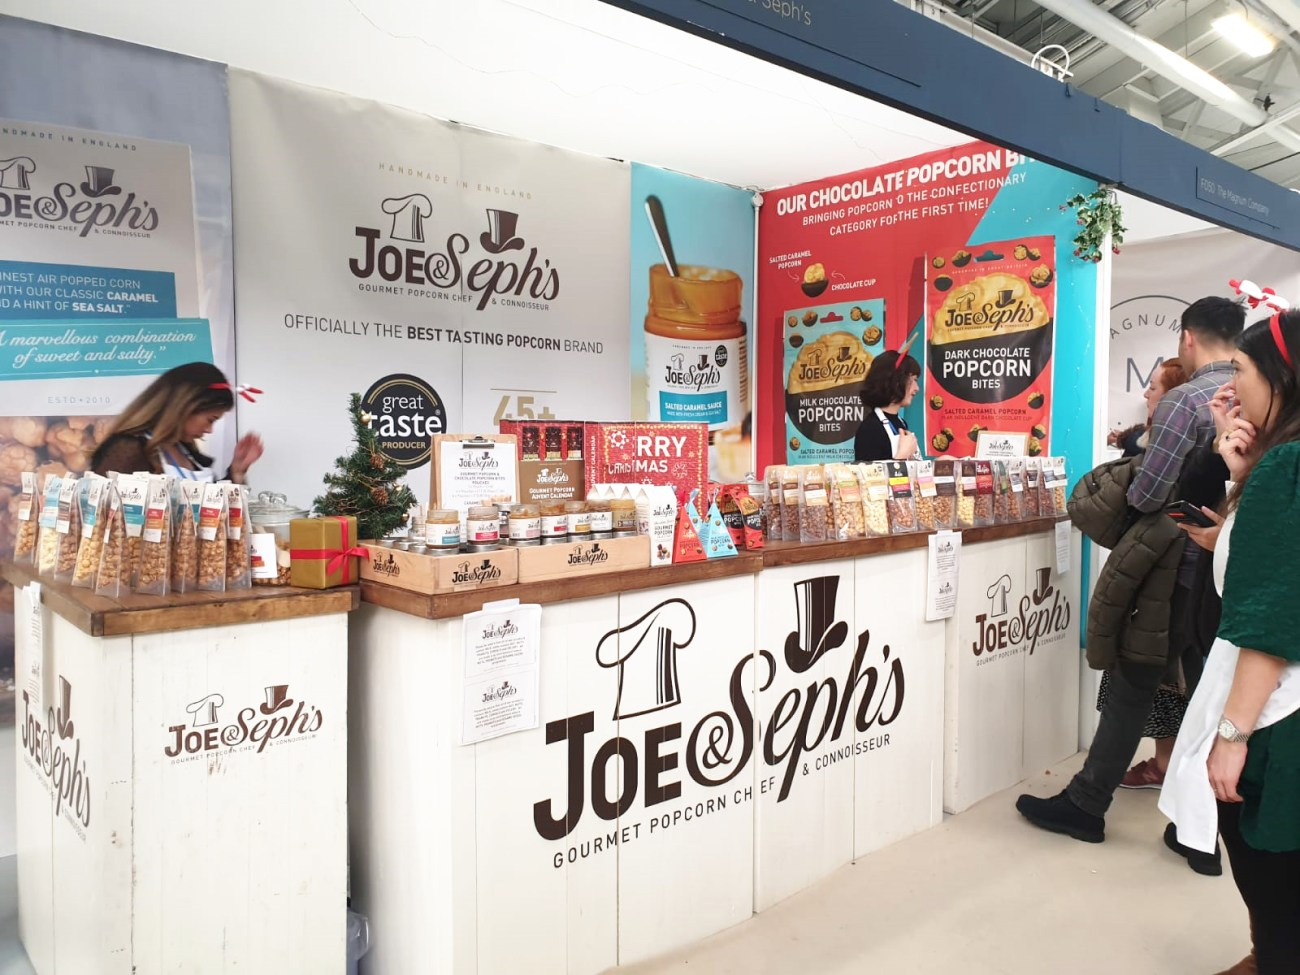 A front view of Joe&Seph's stand